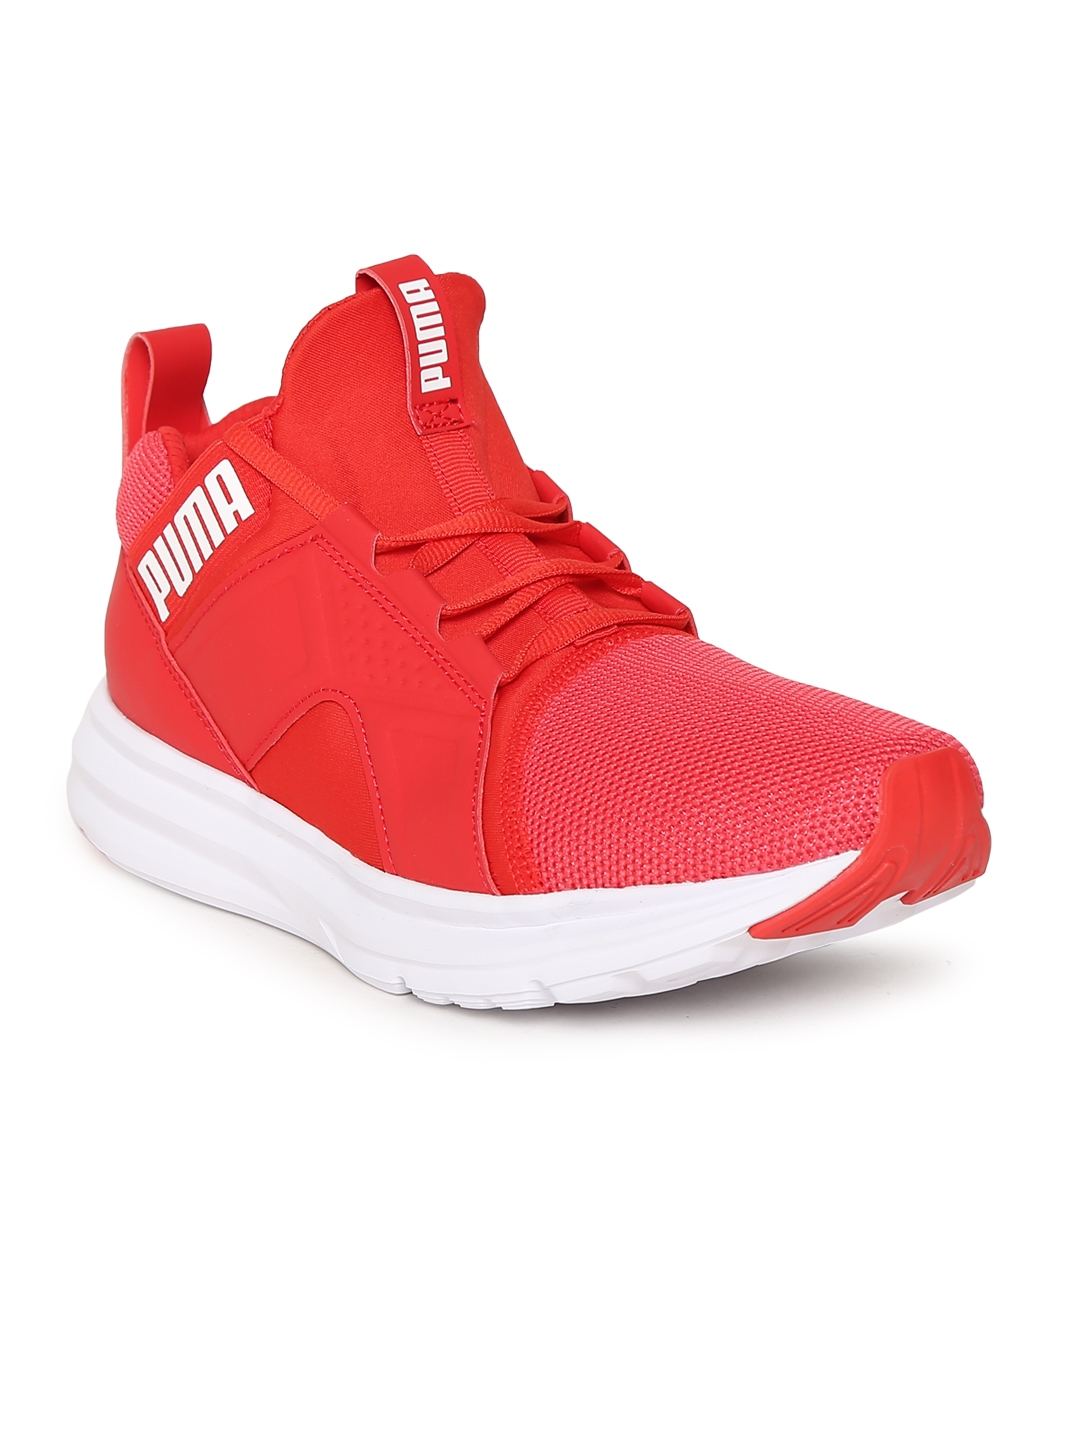 Buy Puma Women Red Enzo Mesh Running Shoes - Sports Shoes for Women ... 343047a7e